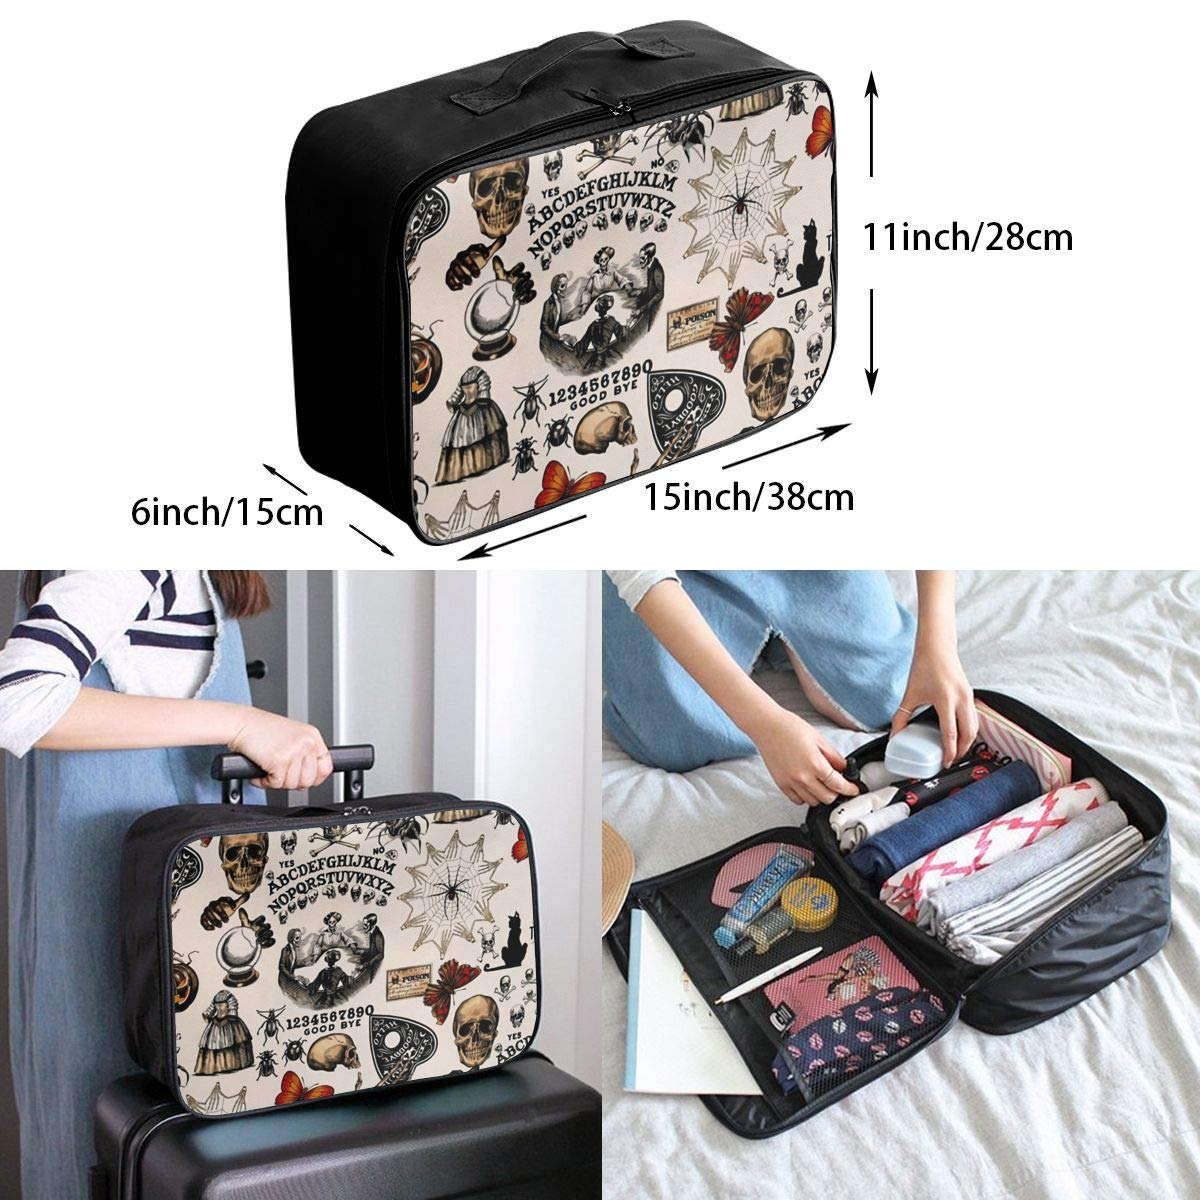 Colorful Witch Board Gothic Travel Lightweight Waterproof Foldable Storage Portable Luggage Duffle Tote Bag Large Capacity In Trolley Handle Bags 6x11x15 Inch